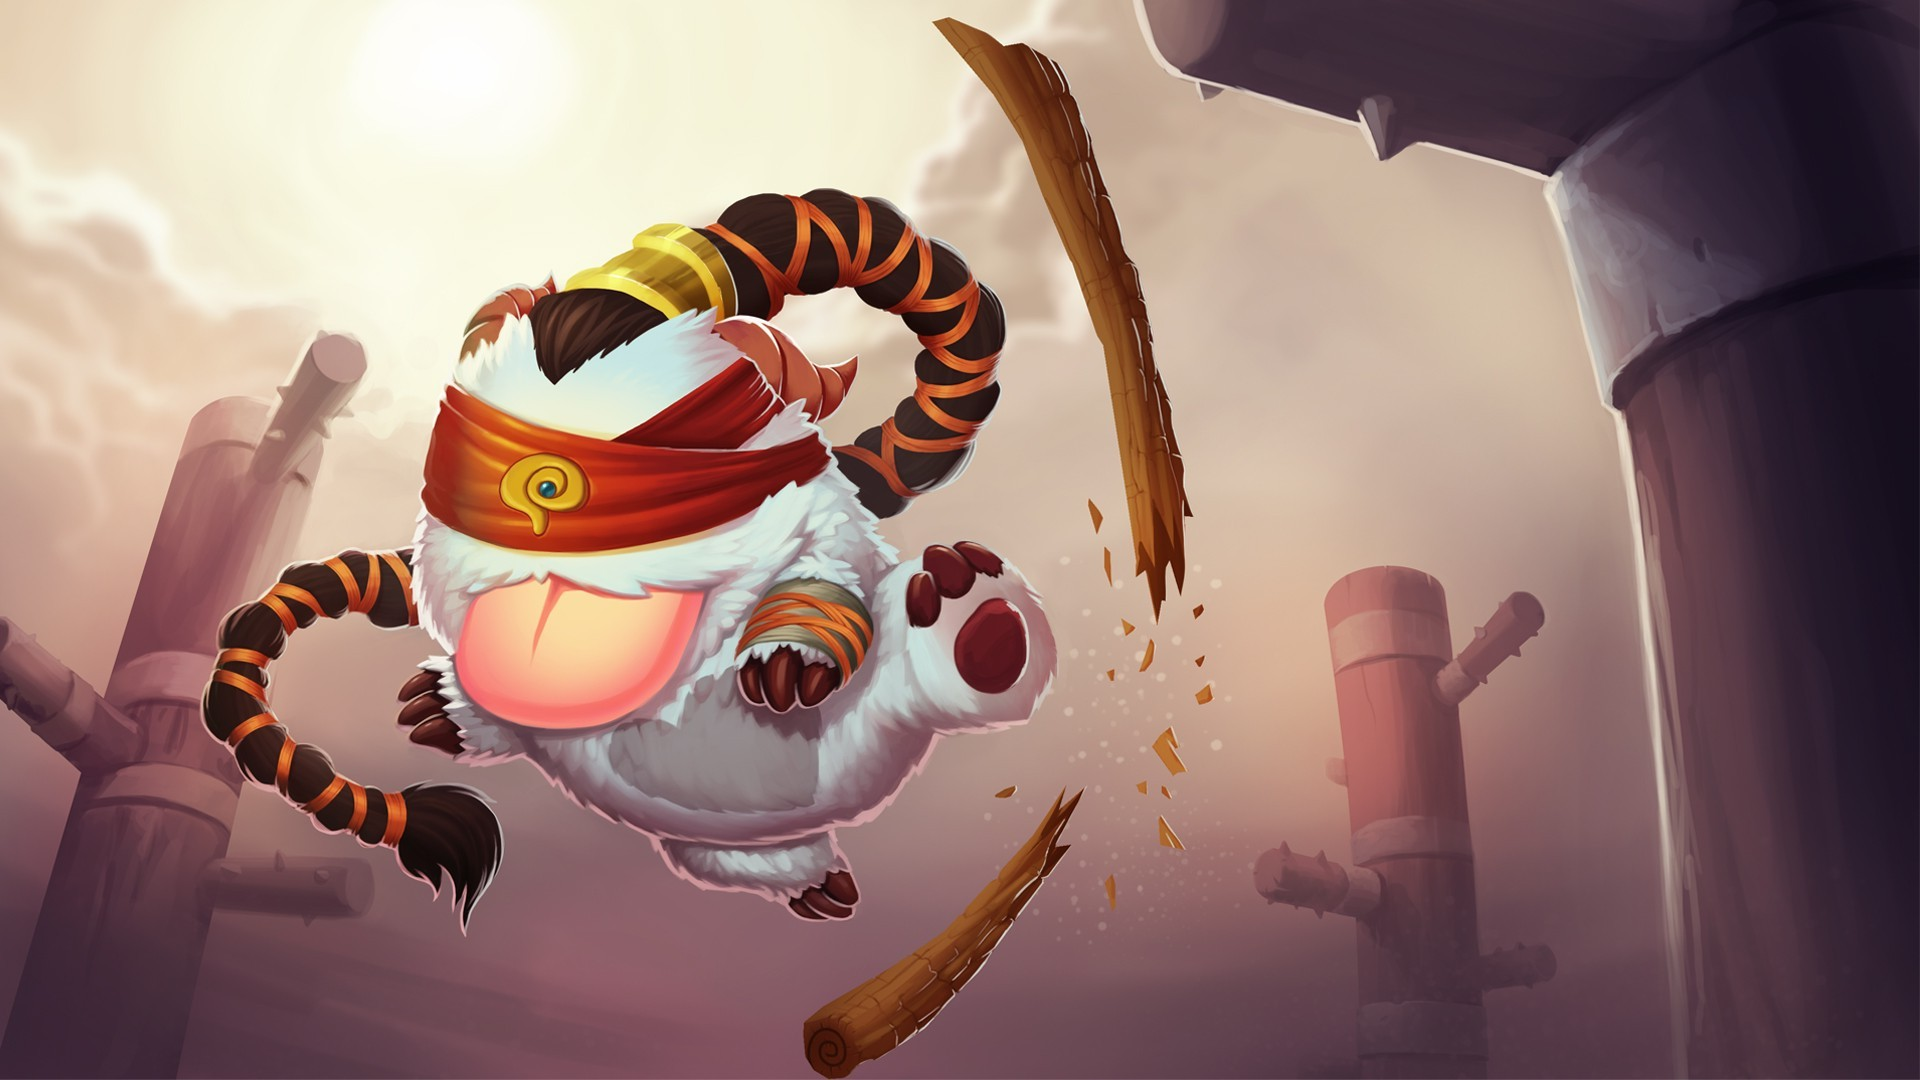 Poro Lee Sin Png 2587105 Hd Wallpaper Backgrounds Download